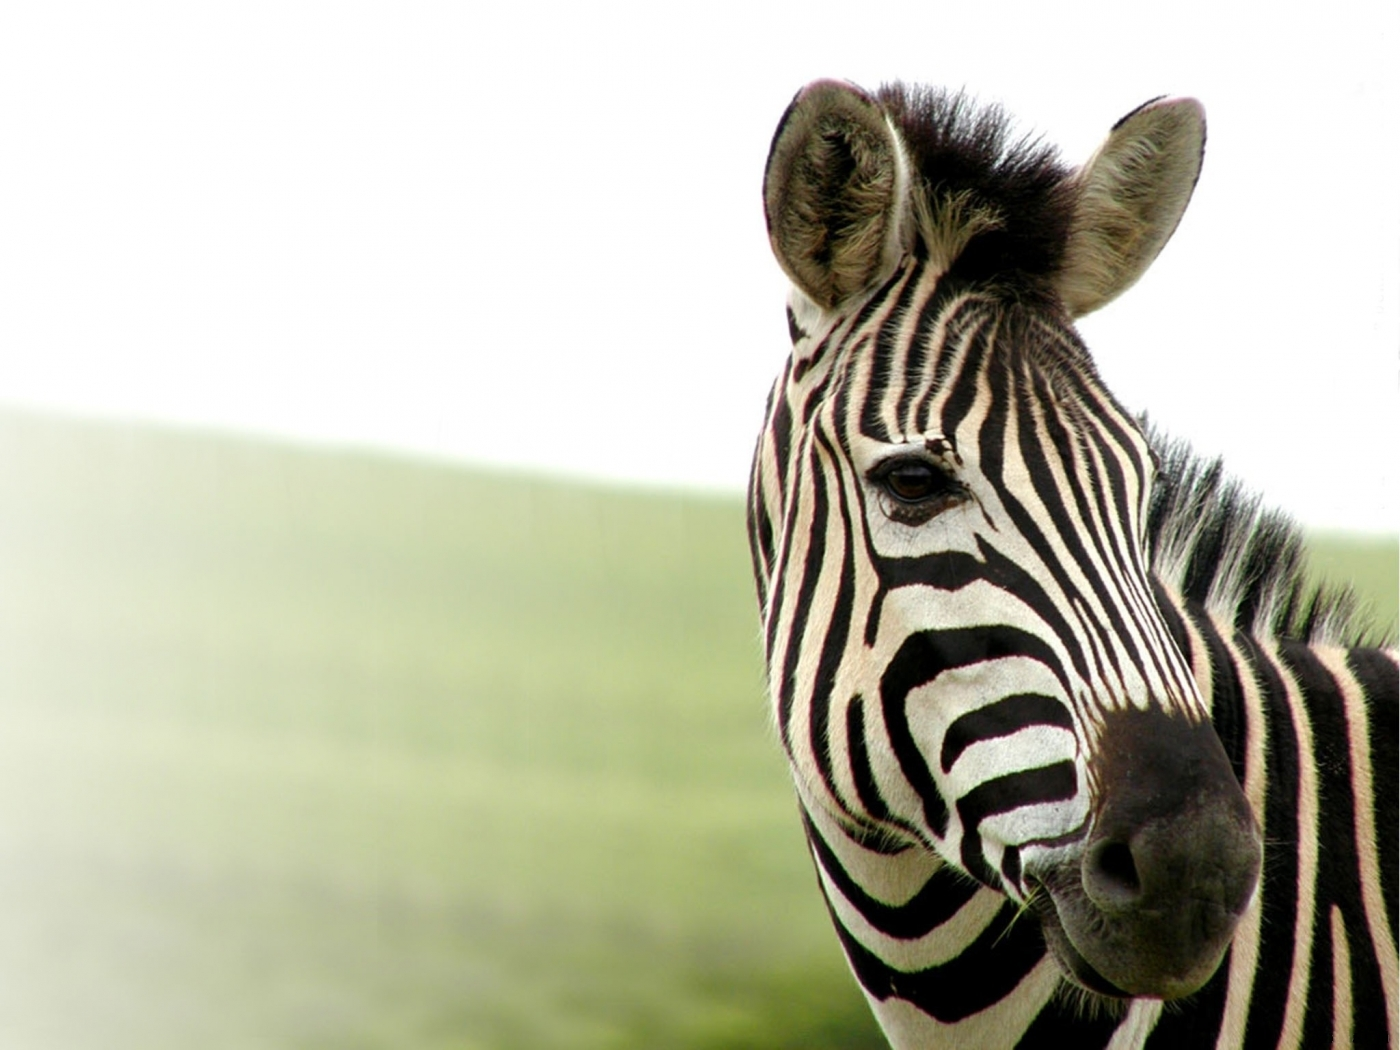 47038 download wallpaper Animals, Zebra screensavers and pictures for free